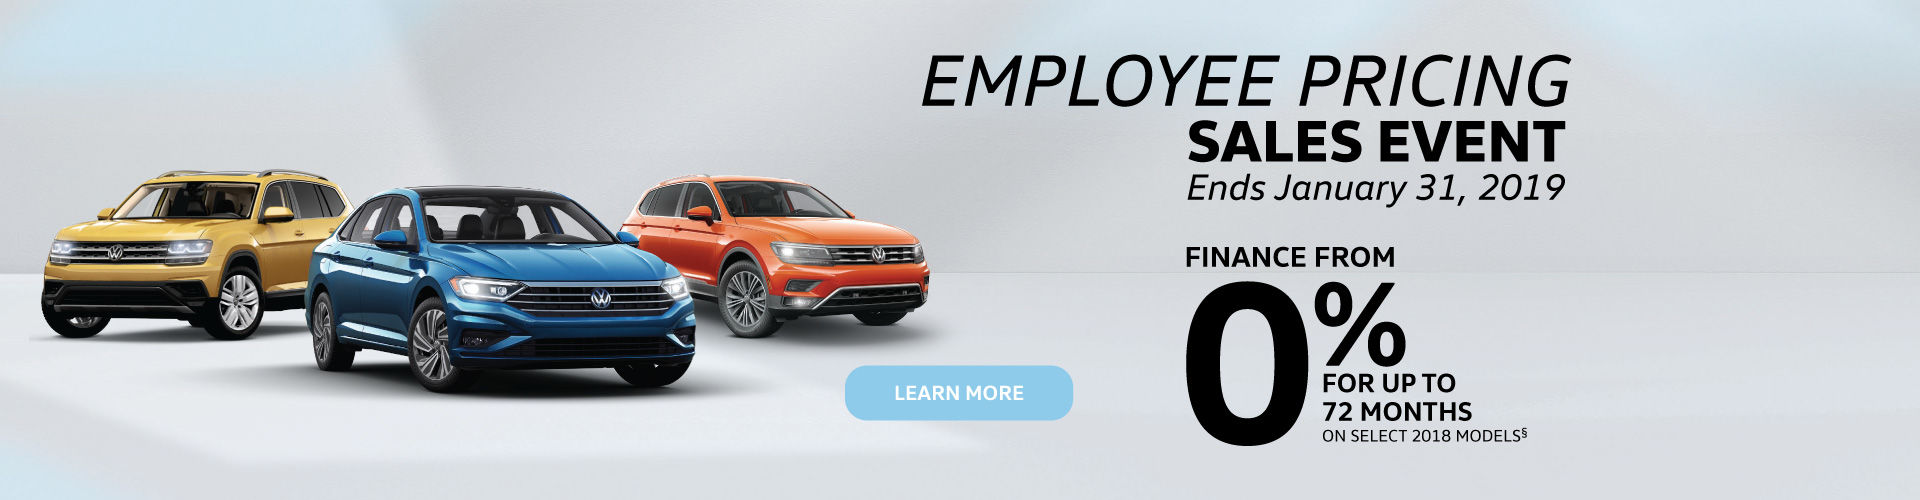 Employee Pricing Sales Event